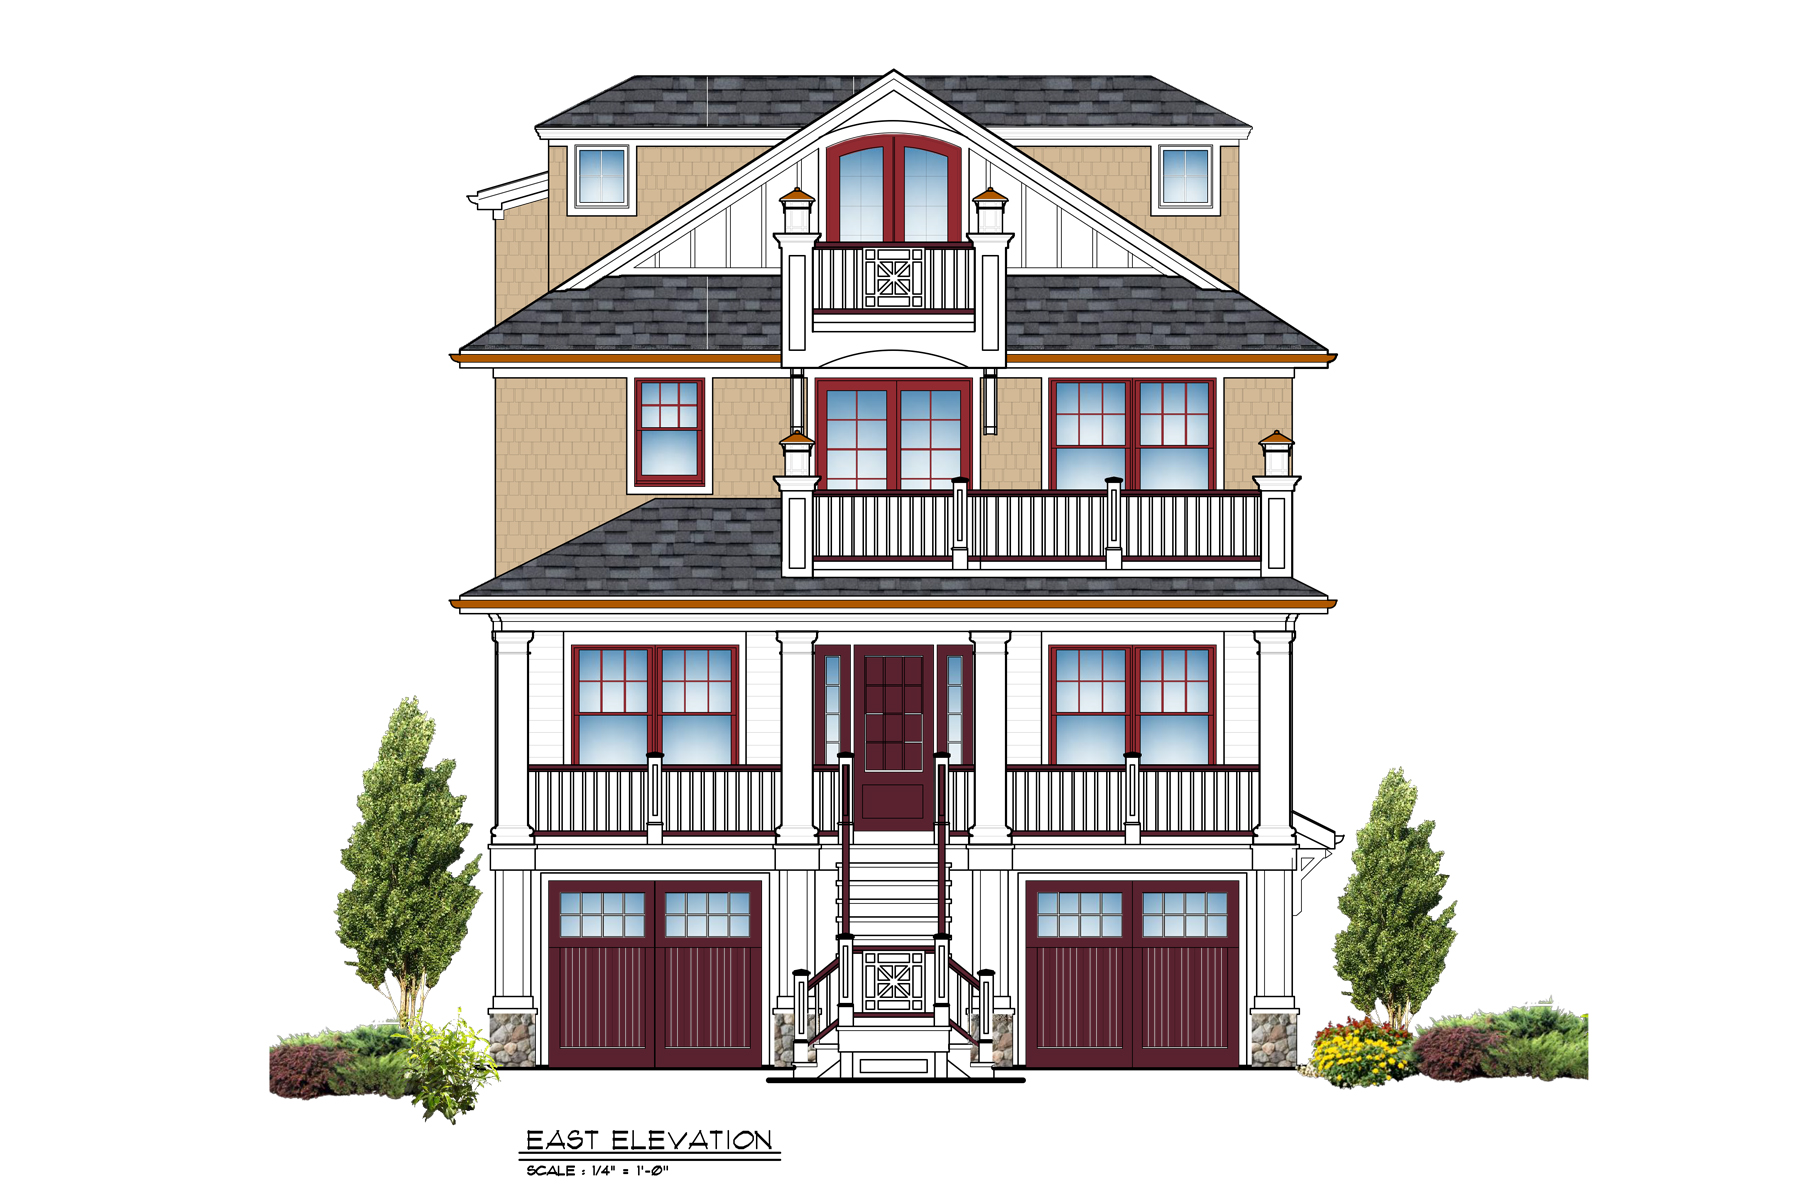 Single Family Home for Sale at Beautiful New Construction With Water Views 519 Sunset Boulevard, Mantoloking, New Jersey 08738 United States